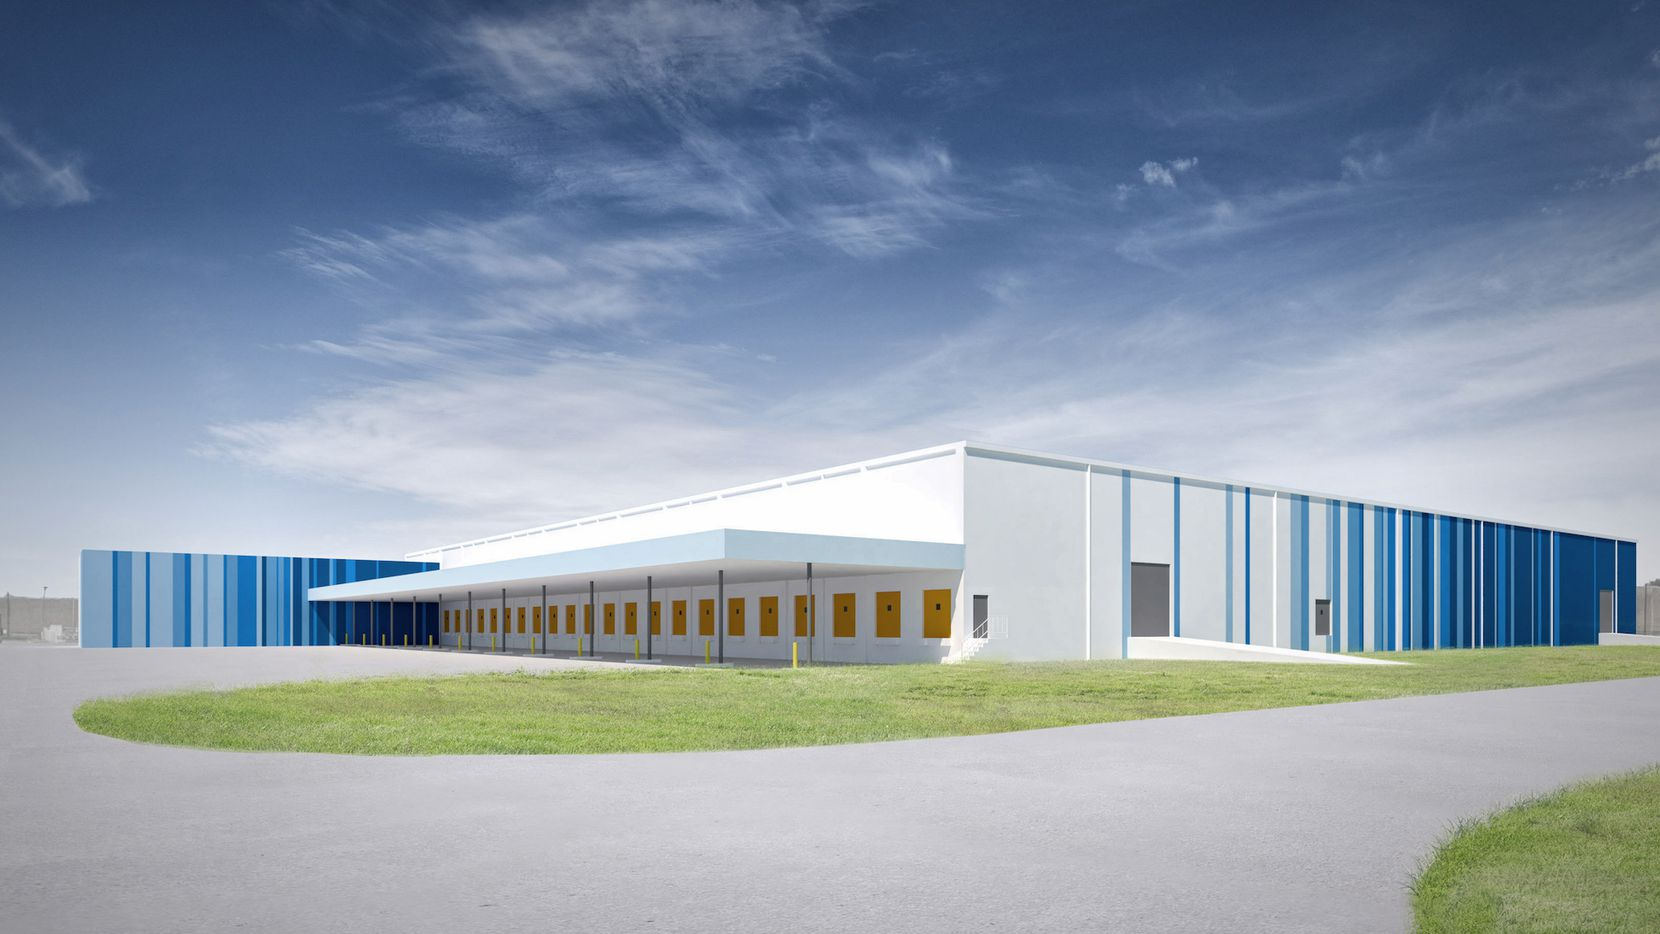 CanTex Capital and Stream Realty Partners have purchased a 123,800-squre-foot industrial property at 2917 Oakland